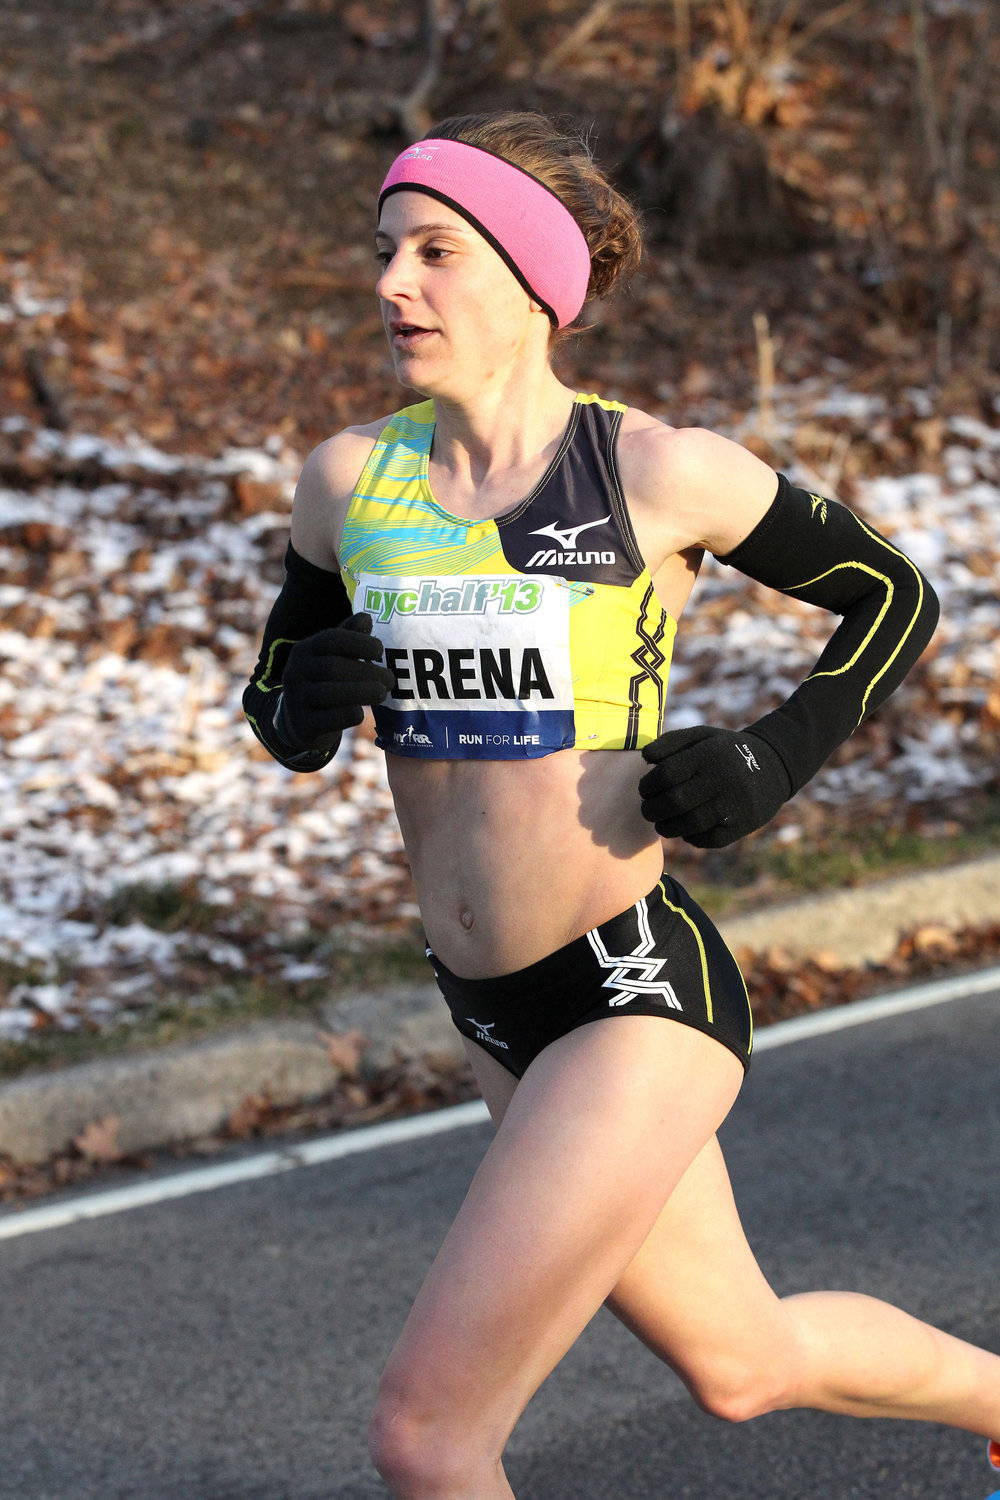 Serena Burla in her last run at the NYC Half, in 2013, when she placed 12th.